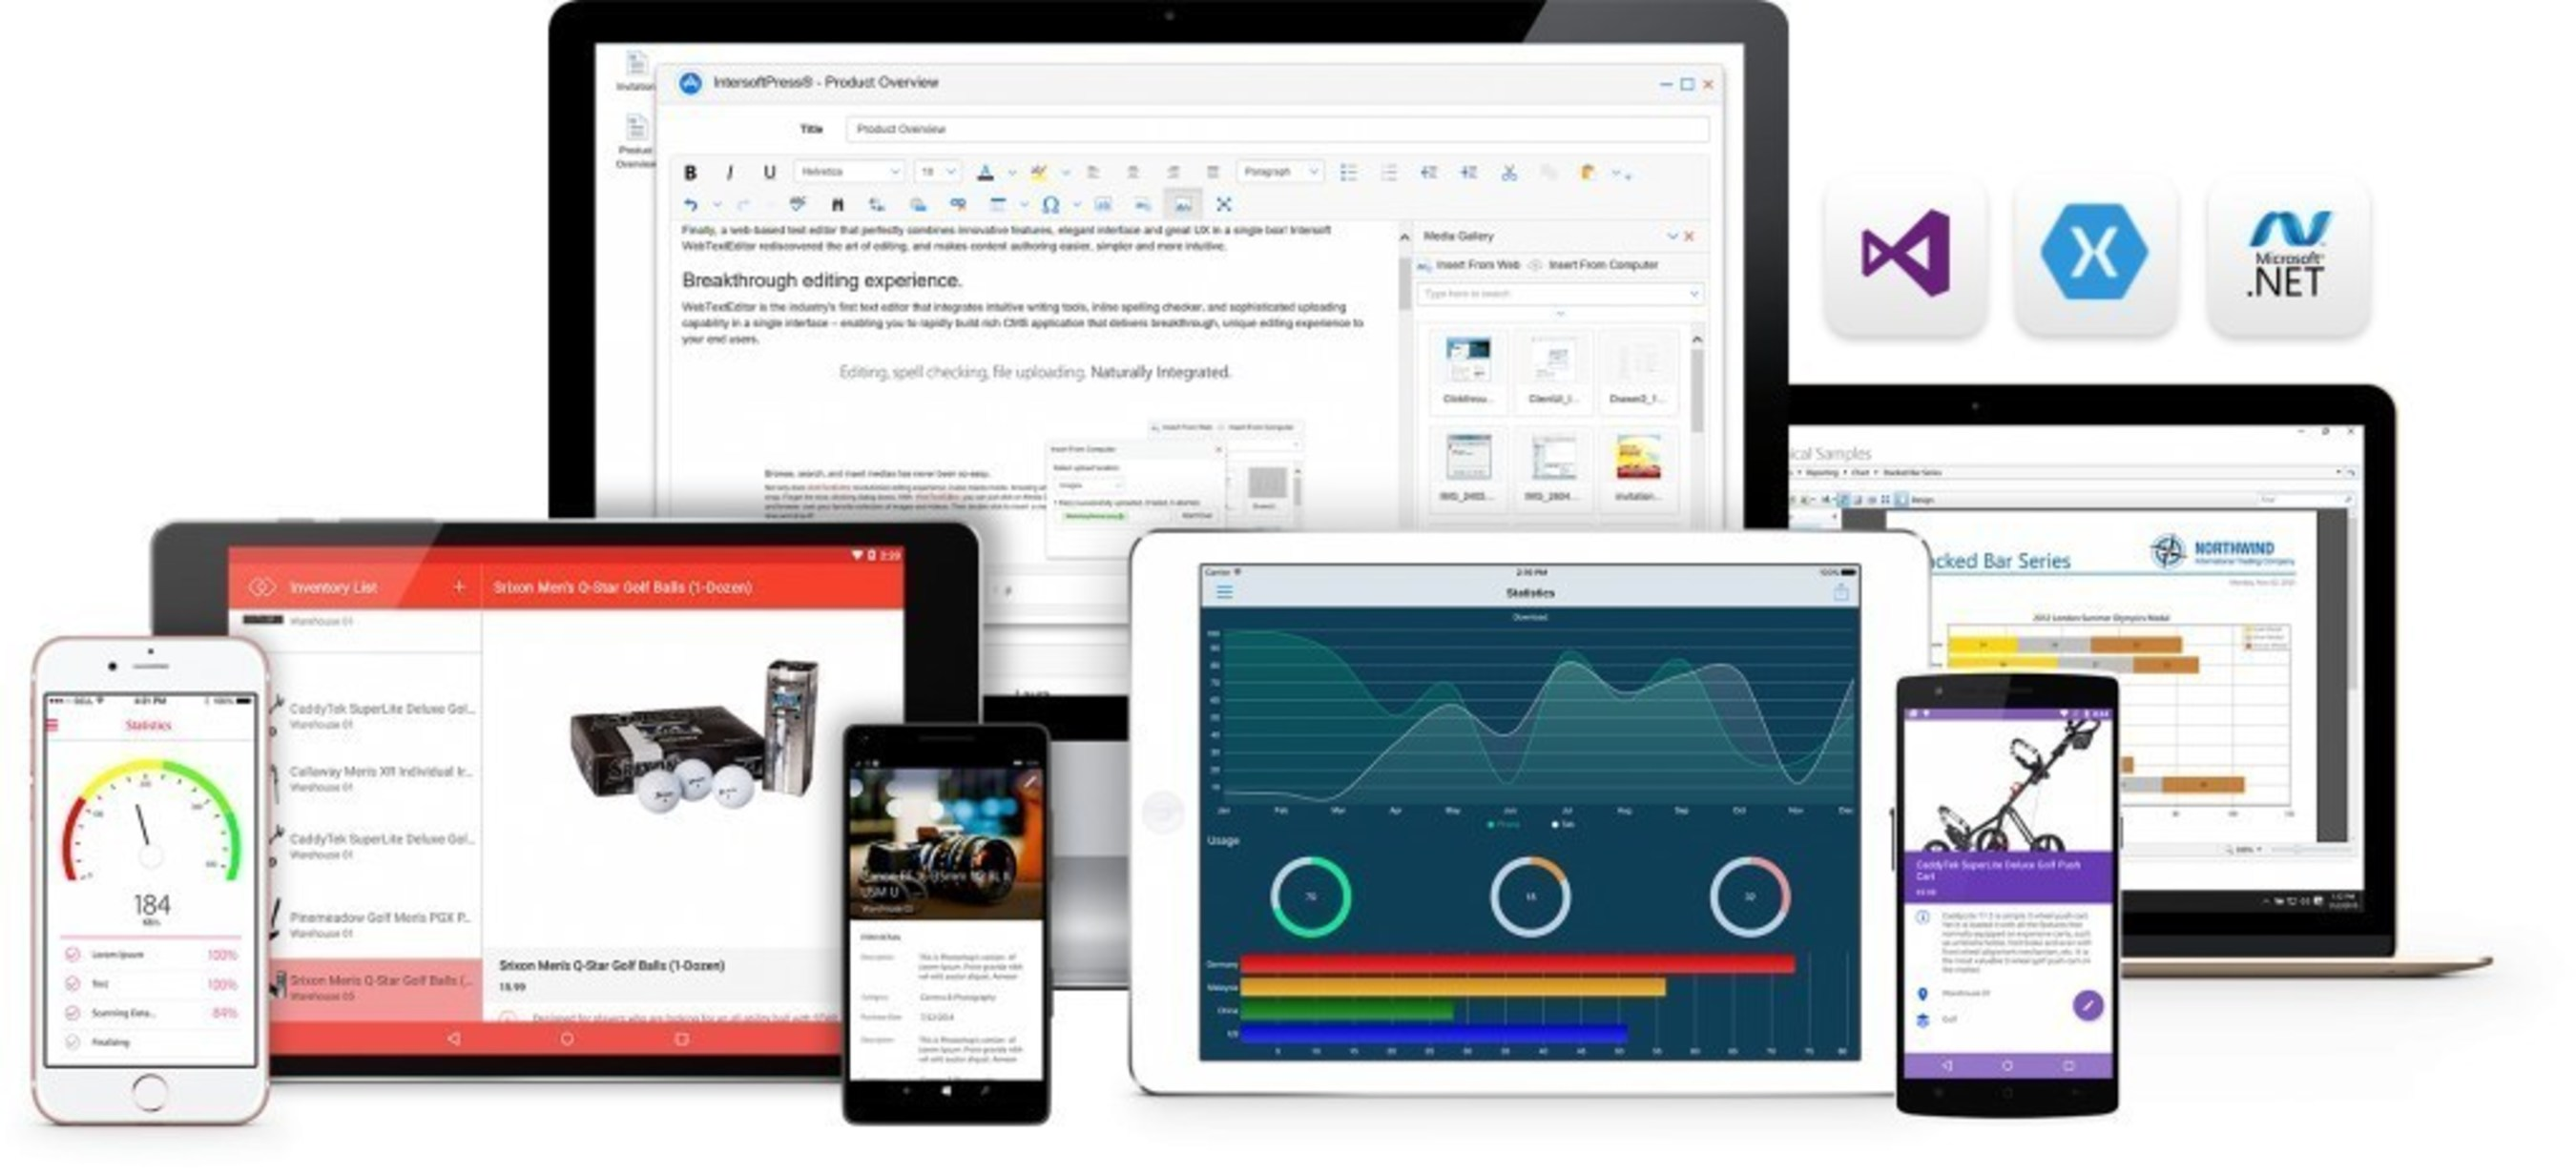 Intersoft Releases Premier Studio 2016 with Massive New Features for the Web, Mobile and Desktop